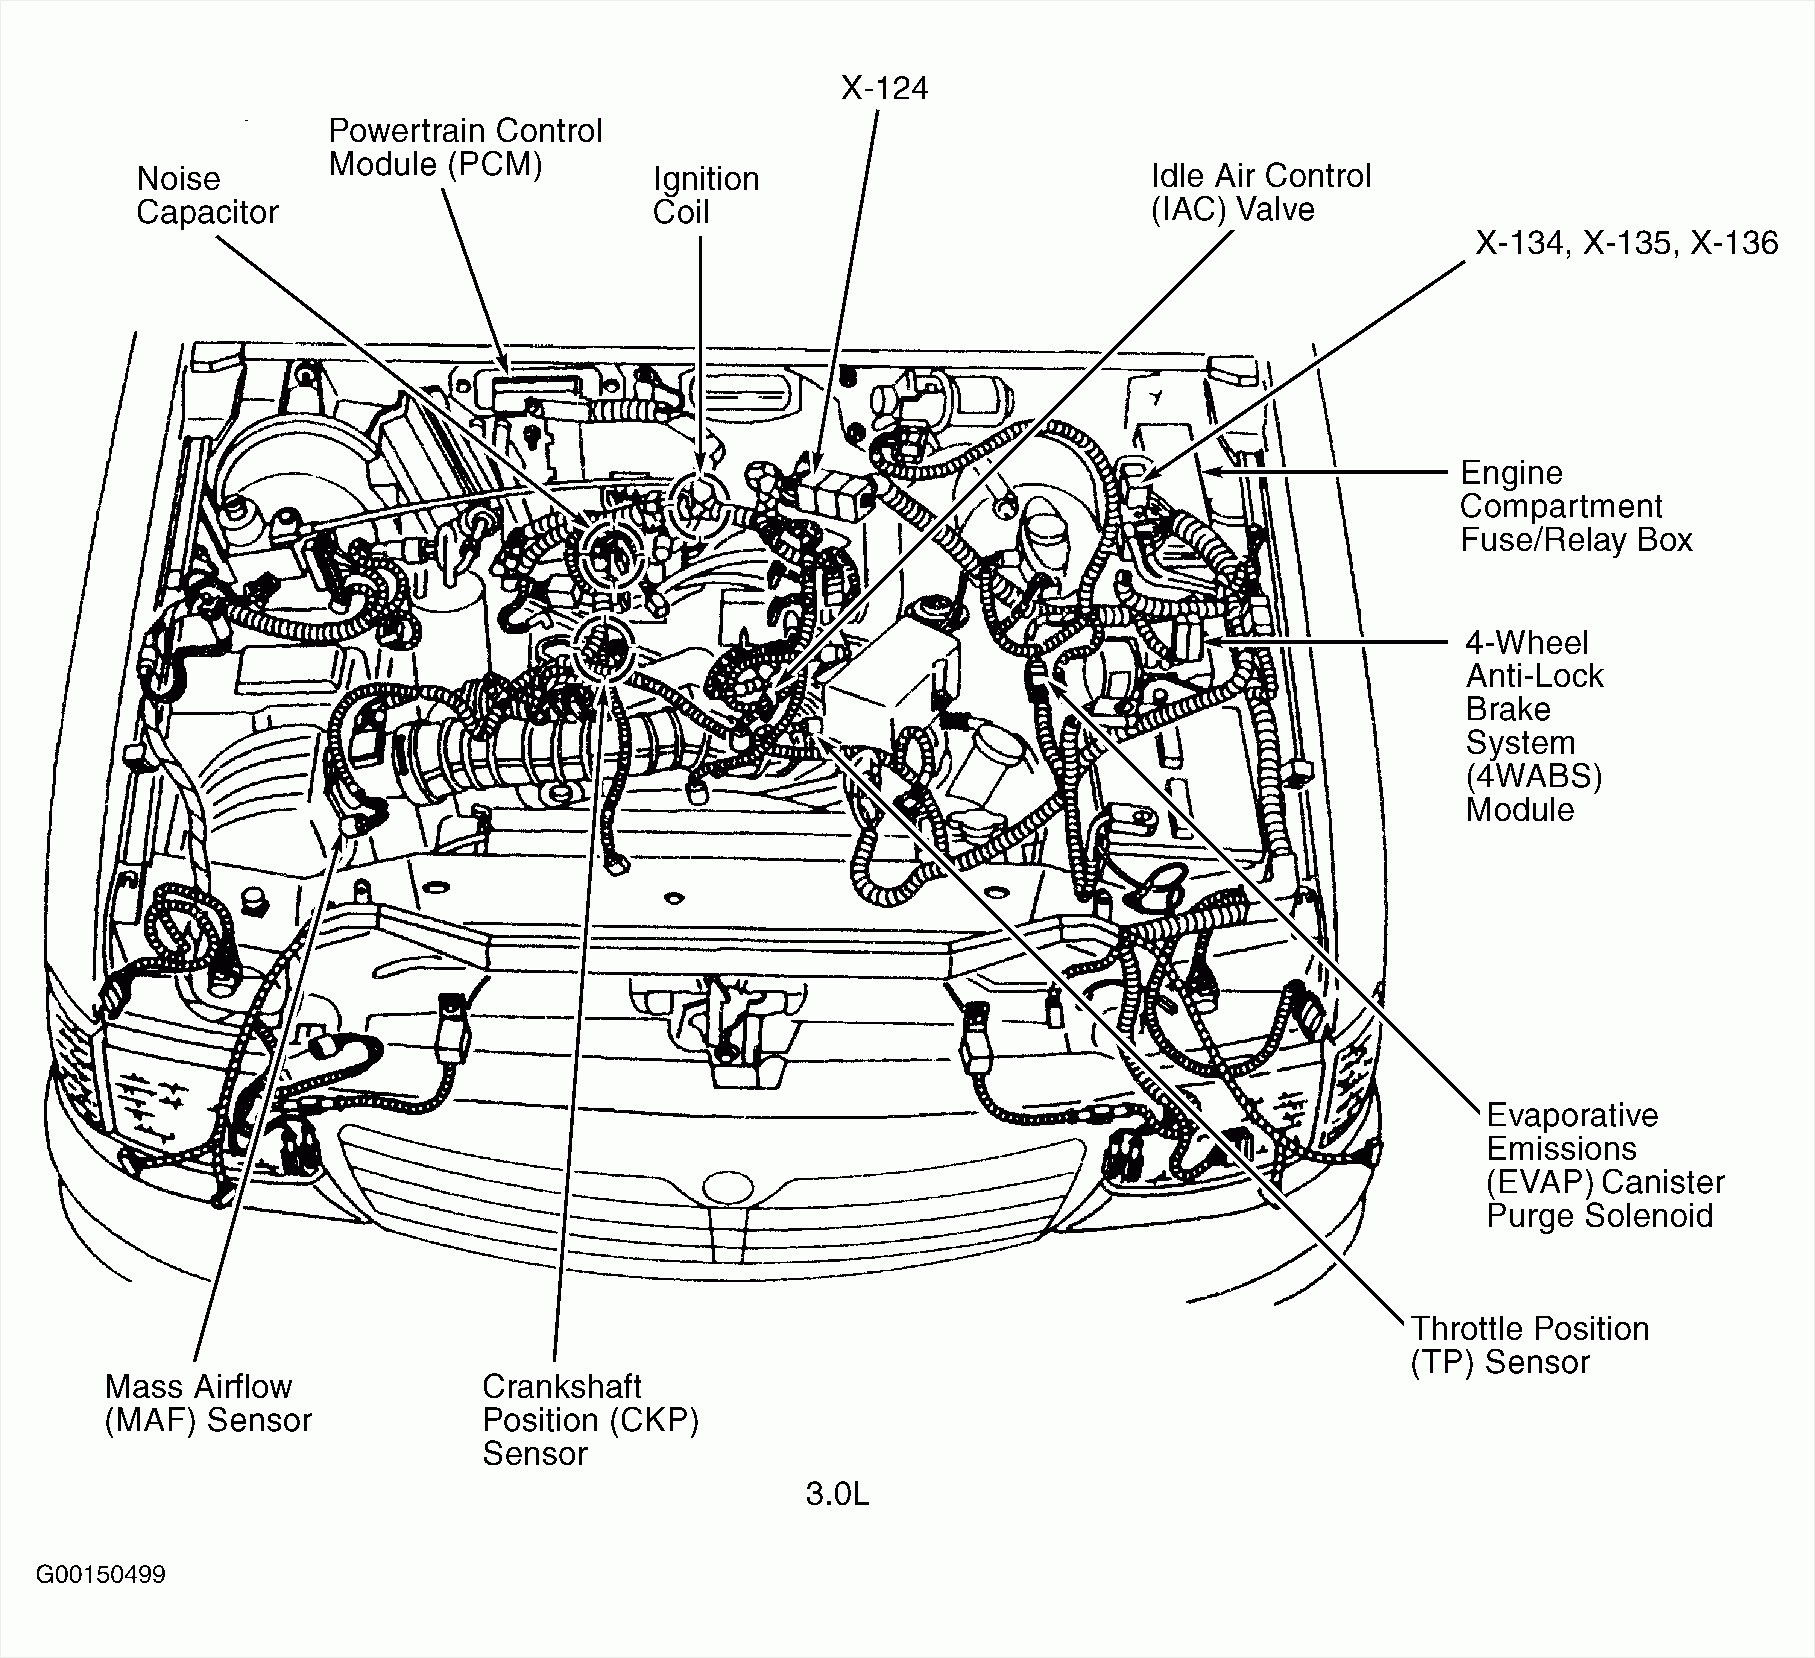 2011 Mustang Engine Diagram The Portal And Forum Of Wiring 2001 Ford V6 Third Level Rh 7 3 13 Jacobwinterstein Com 2006 Fox Body Mount